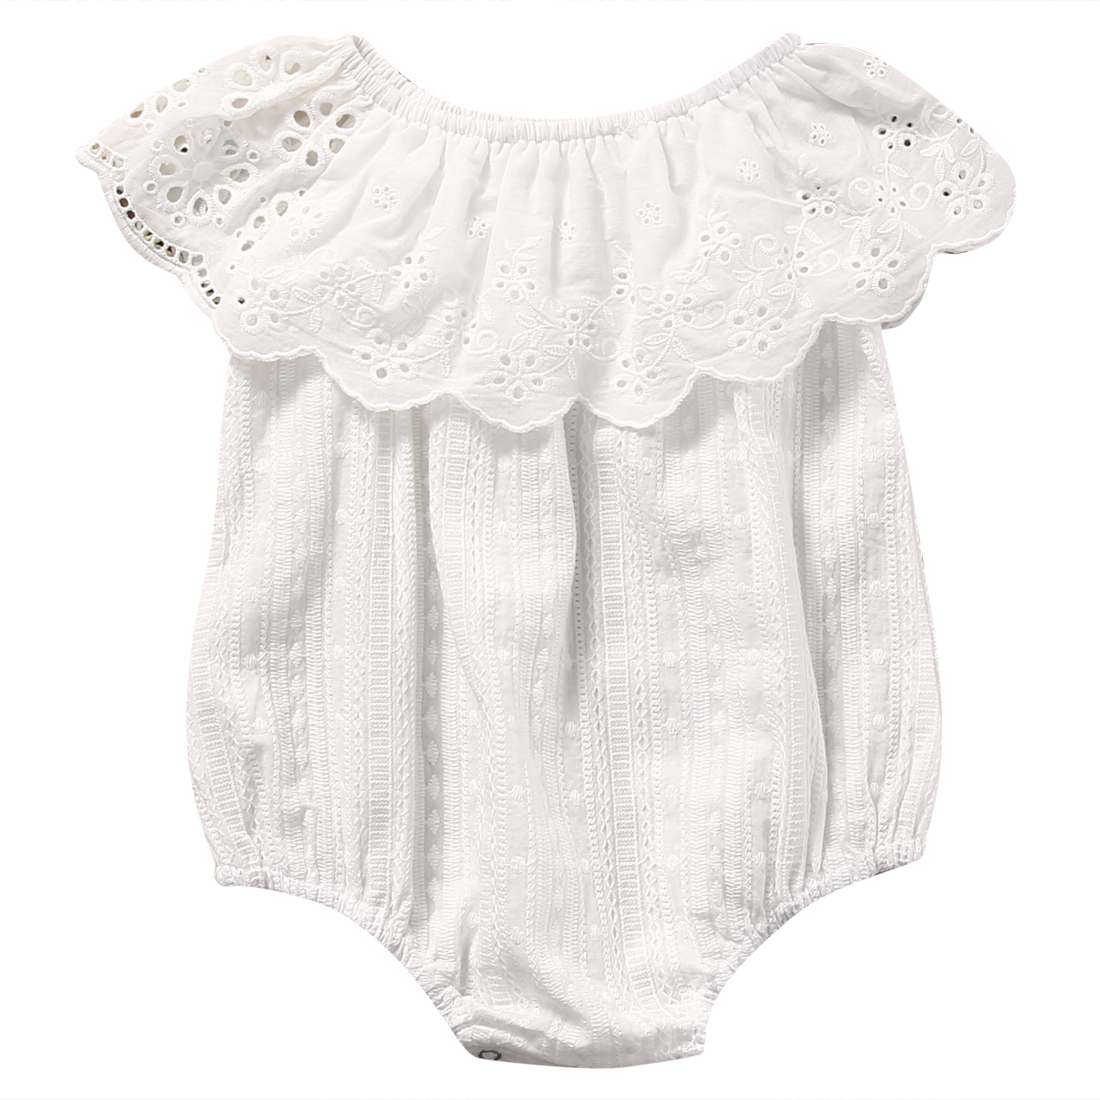 2b3c8a4fb19 Detail Feedback Questions about Summer 2017 Newborn Toddler Baby Girl White  Lace Romper Jumpsuit Infant Clothes Outfit Sunsuit on Aliexpress.com